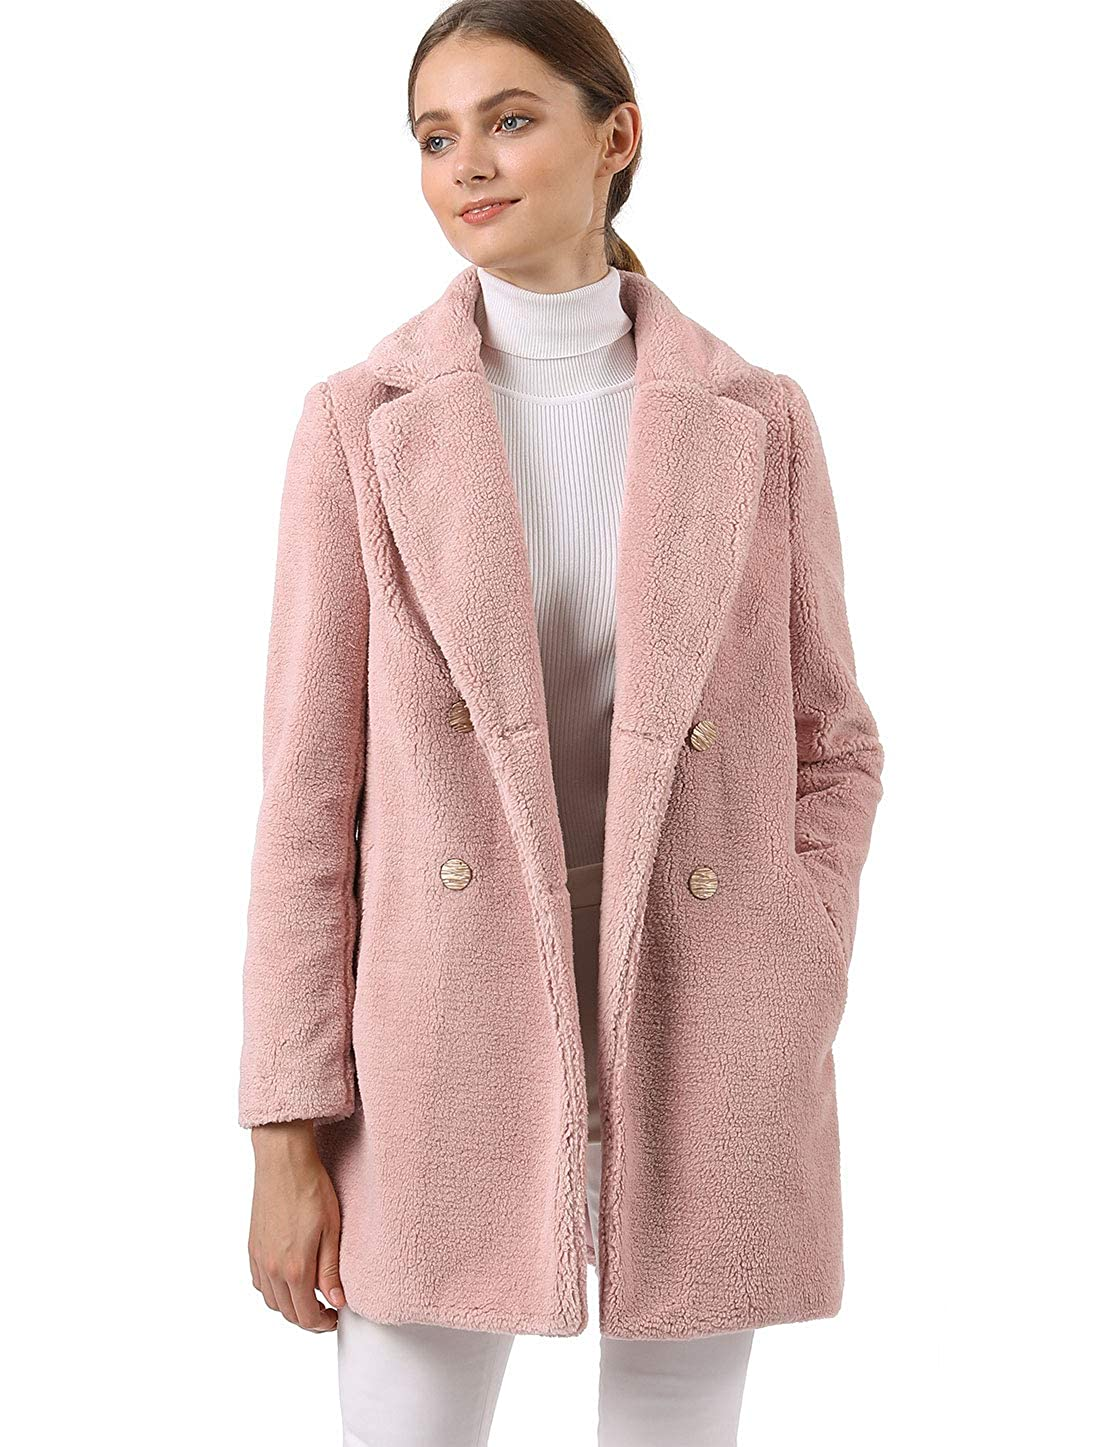 c514a831c Allegra K Women's Faux Fur Coat Double Breasted Button Light Weight Plush  Thigh Length Jacket